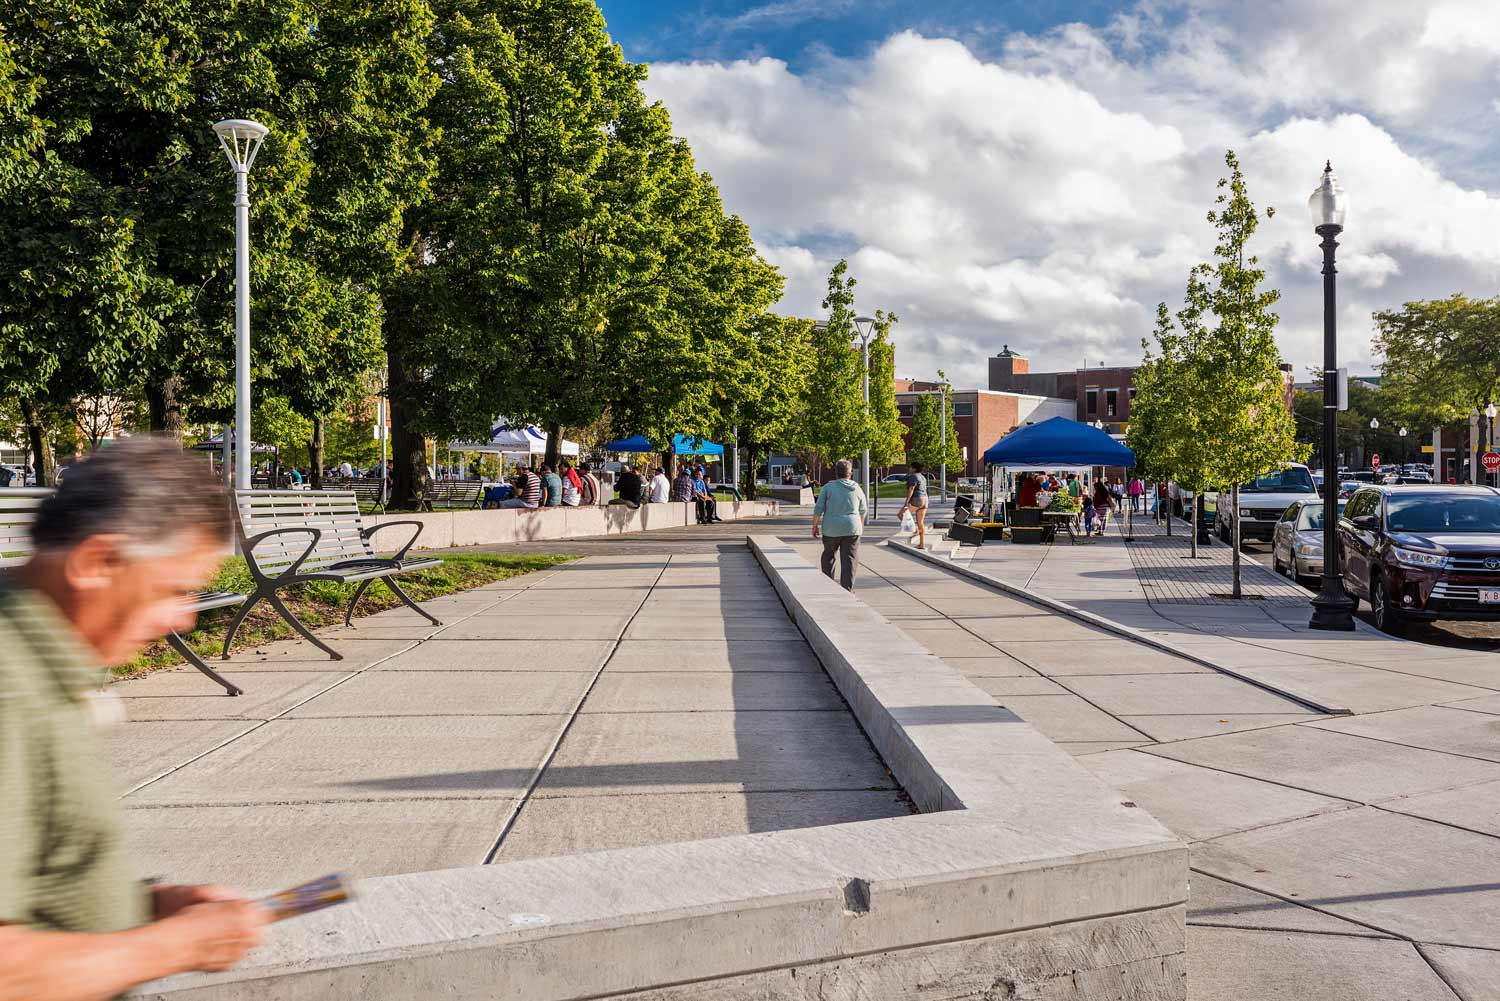 Central-Square-East-Boston_board-form-concrete_farmers-market_urban-park_Klopfer-Martin.jpg